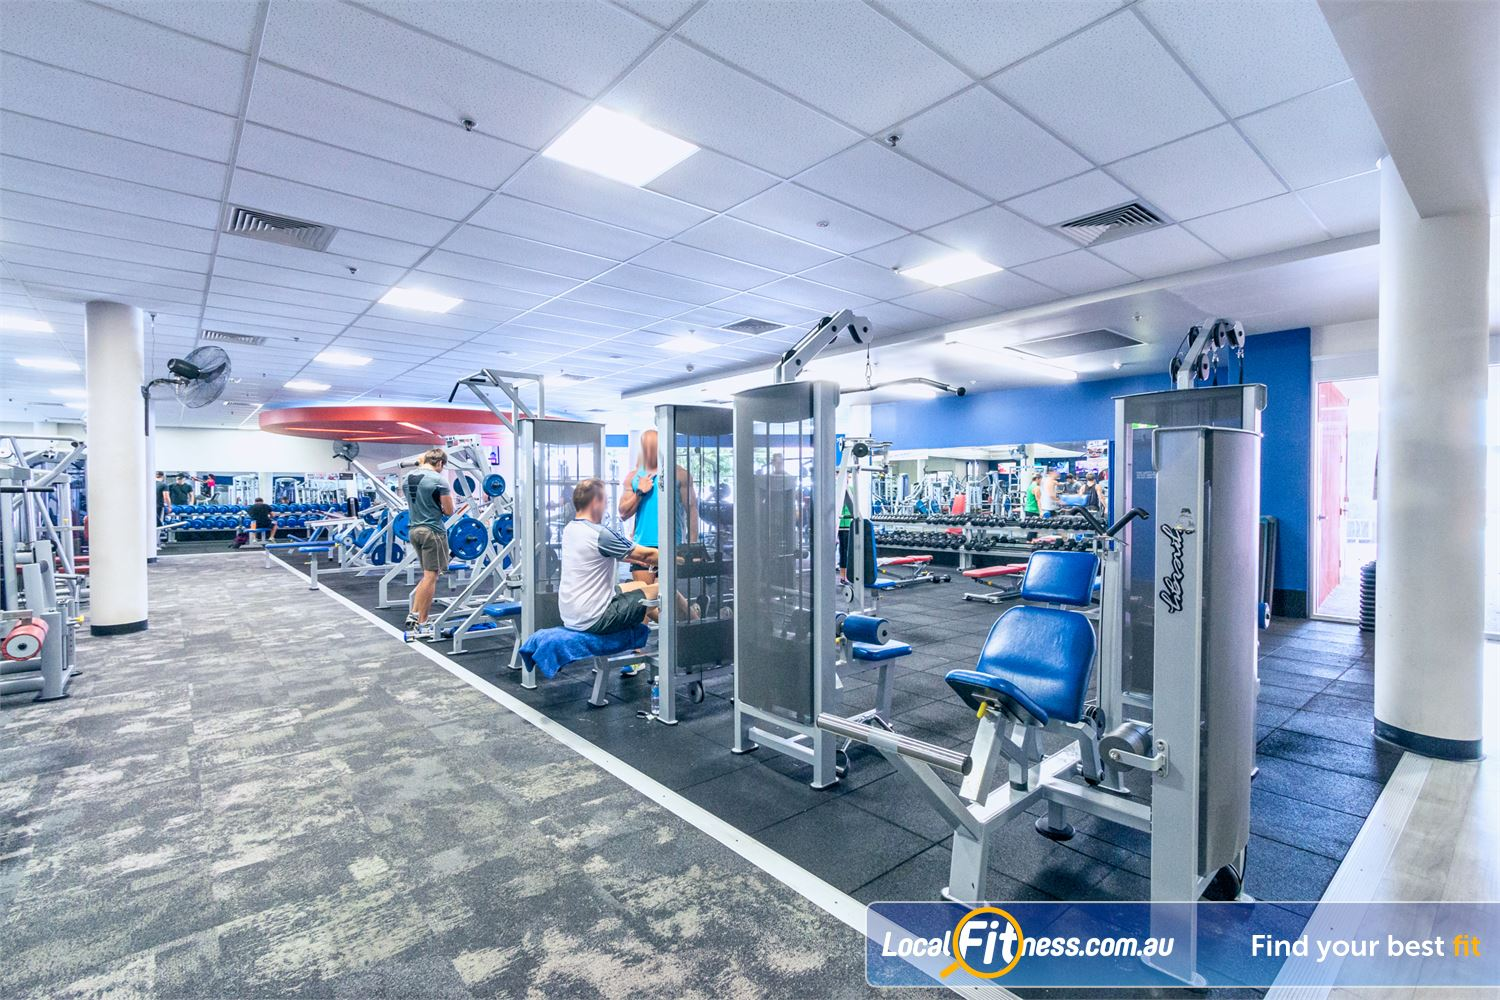 Goodlife Health Clubs Near Kangaroo Point Our Goodlife Fortitude Valley gym is spacious.